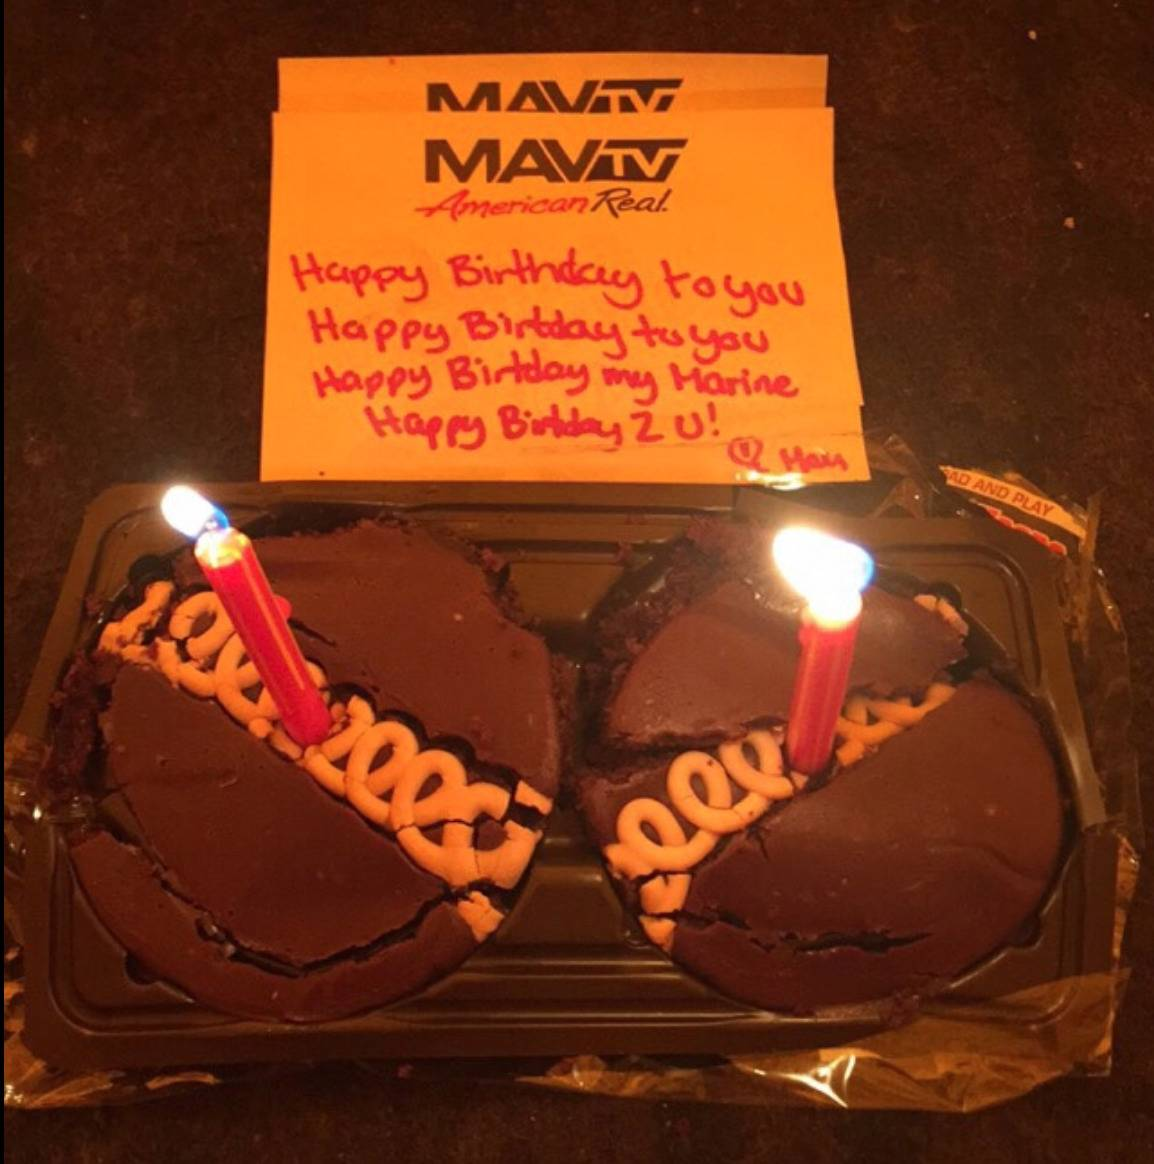 two cupcakes with note: Happy birthday to you, happy birthday to you, Happy birthday my Marine, Happy birthday 2 u! Love, Mom